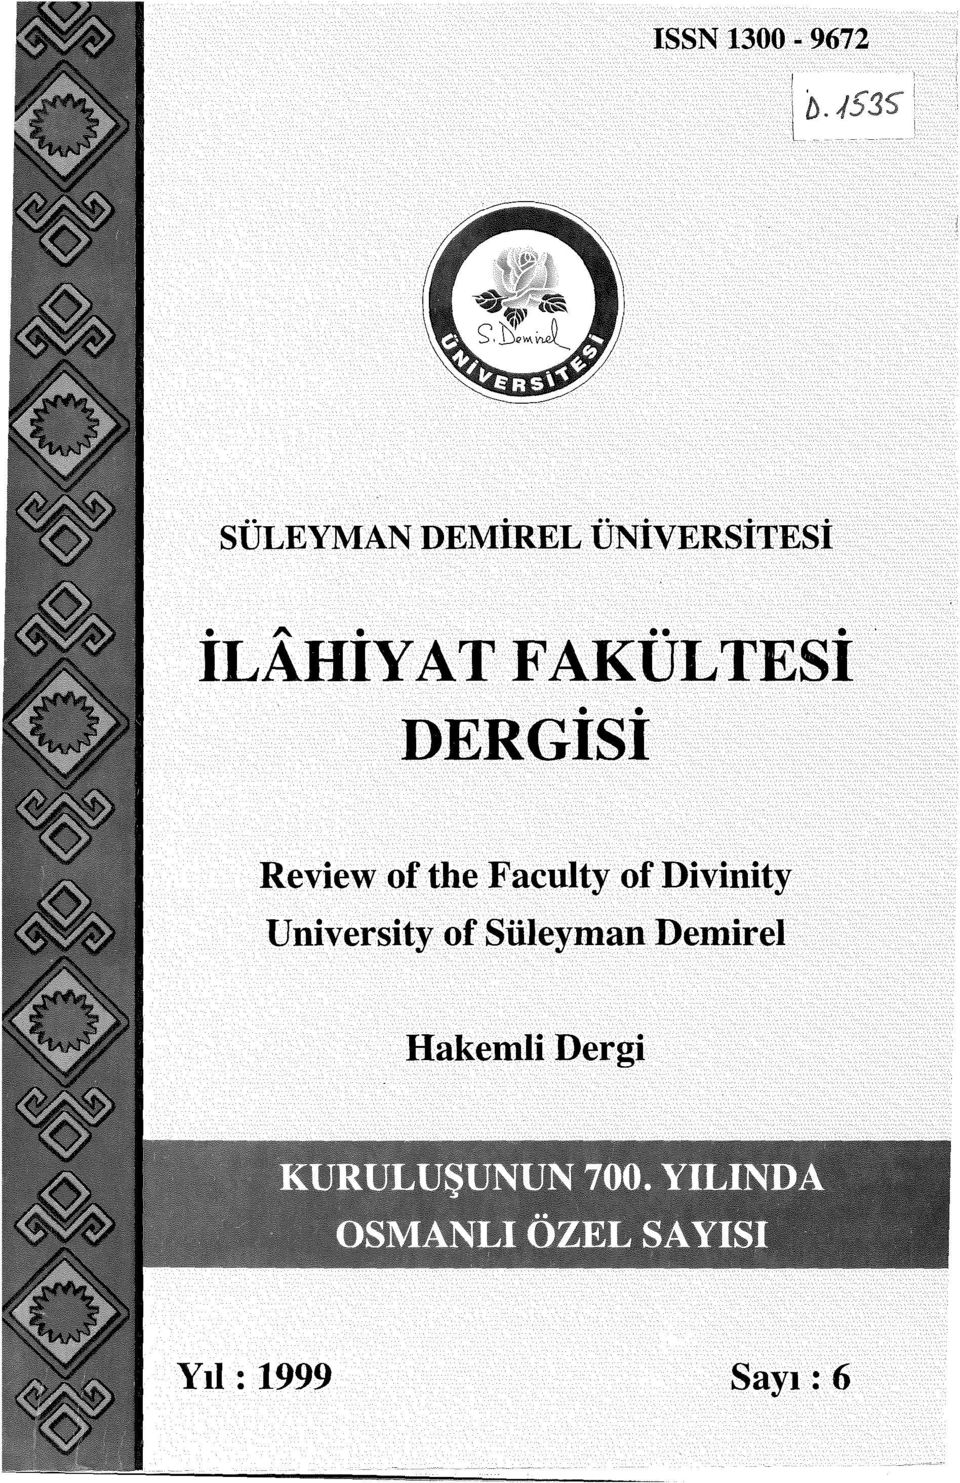 Review of the Faculty of Divinity